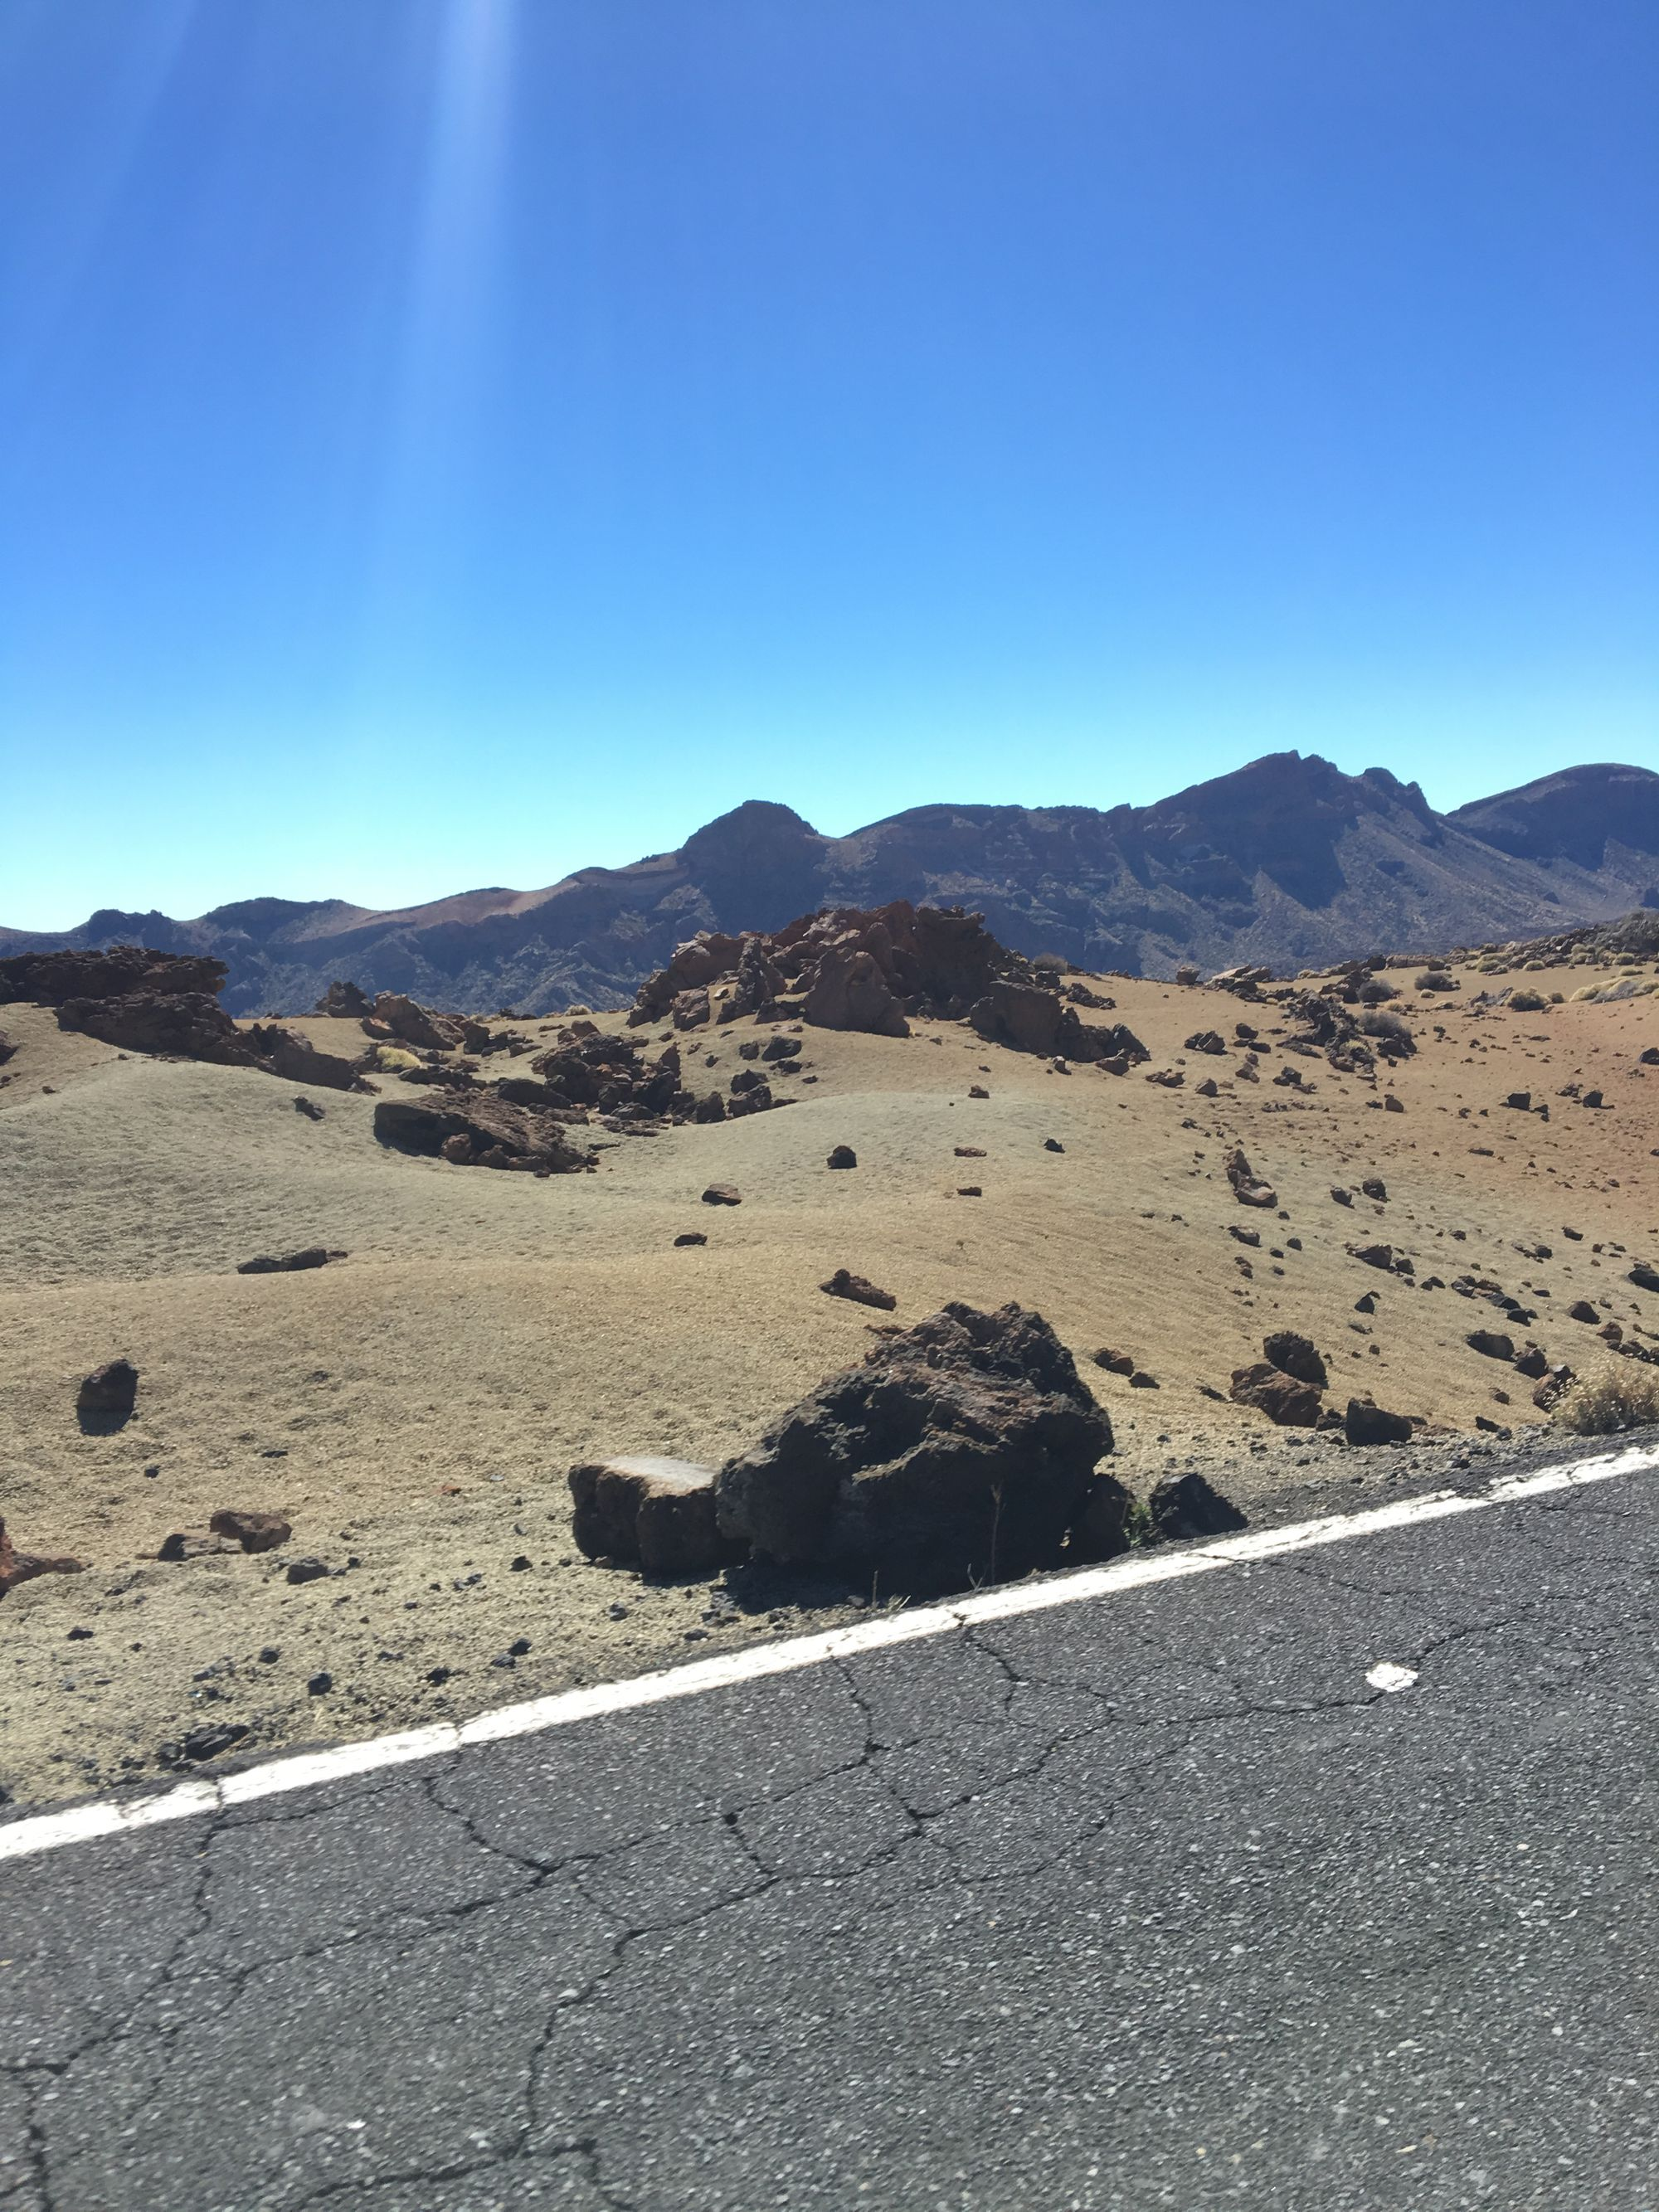 cycling in Tenerife and its barren volcanic landscape